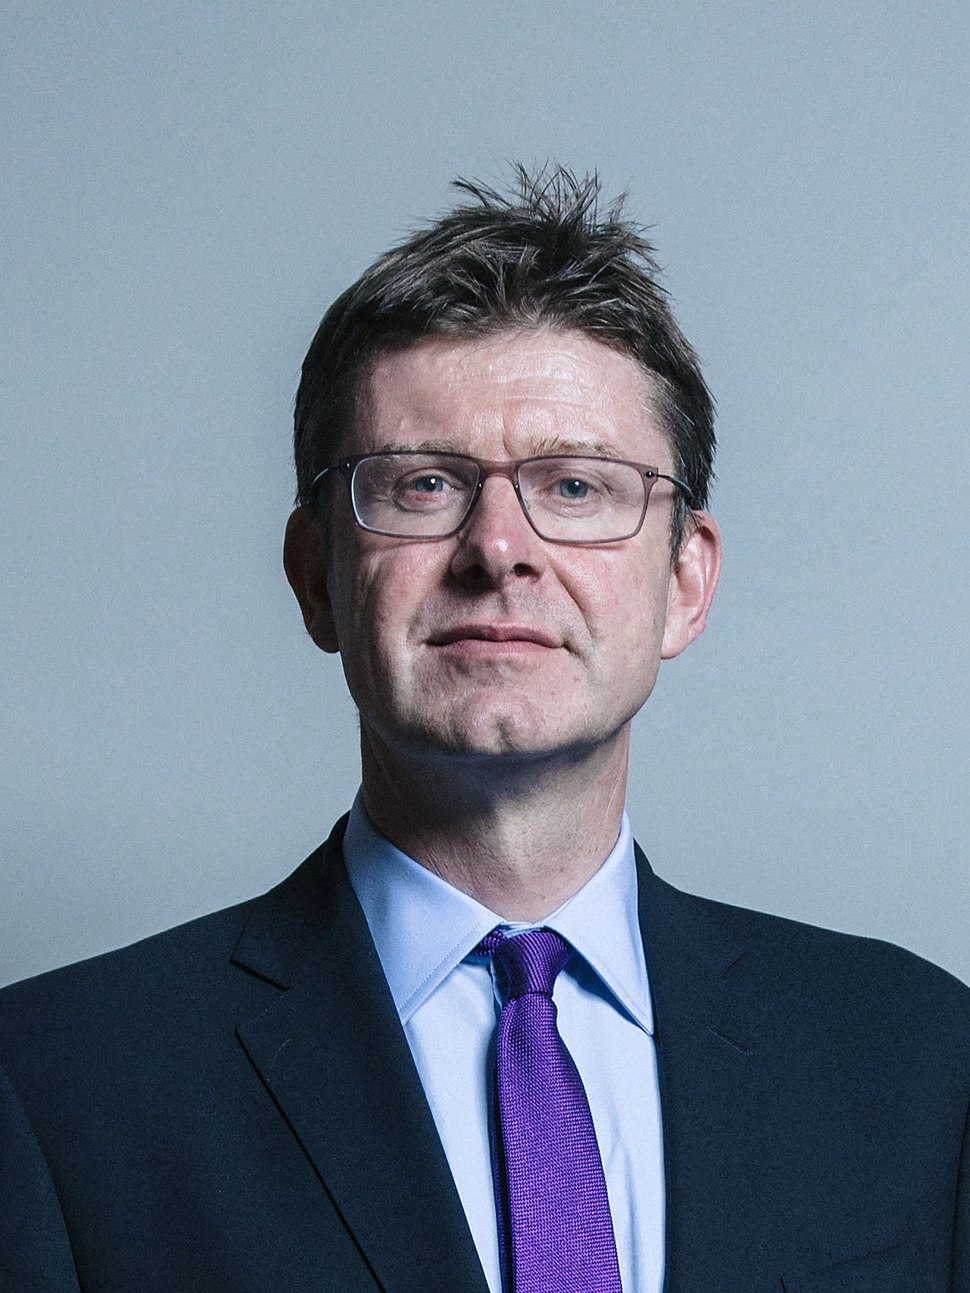 Official portrait of Greg Clark crop 2